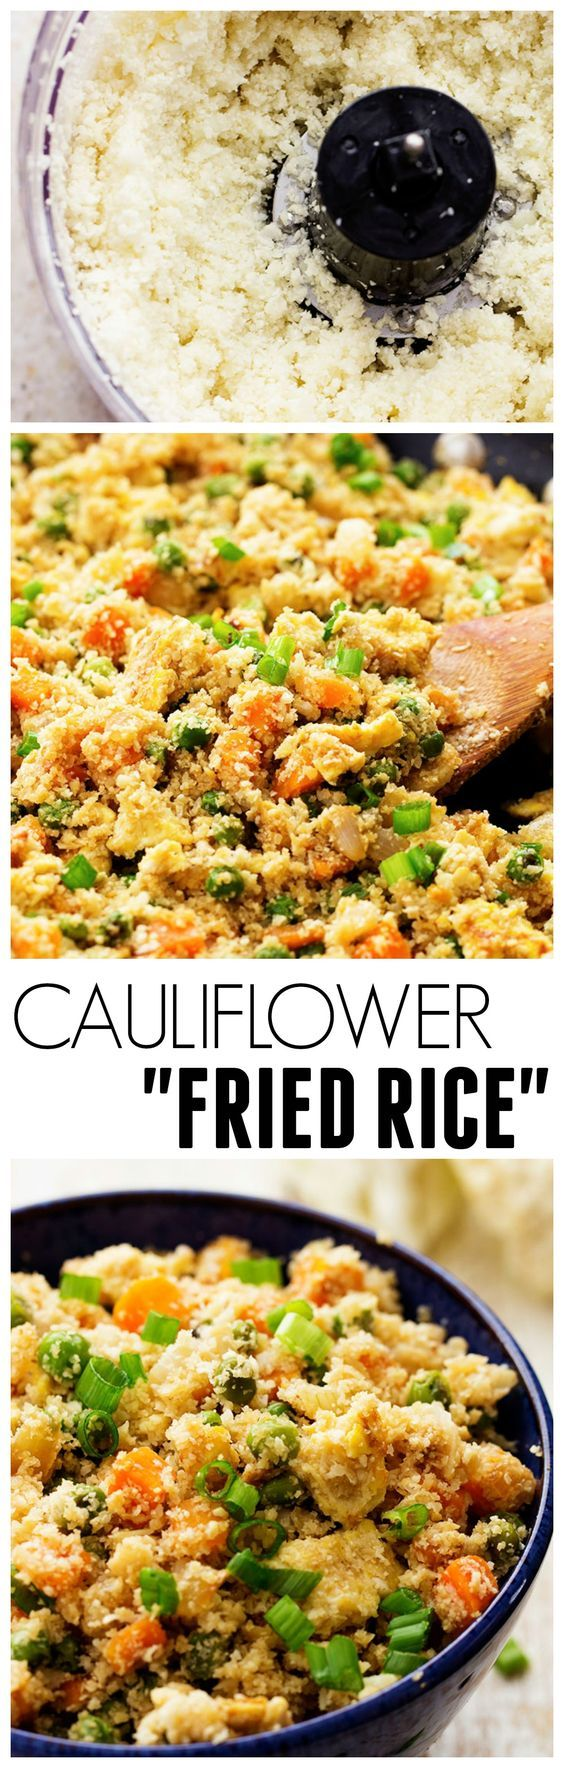 Cauliflower Fried Rice Recipe plus 24 more of the most popular pinned Paleo recipes